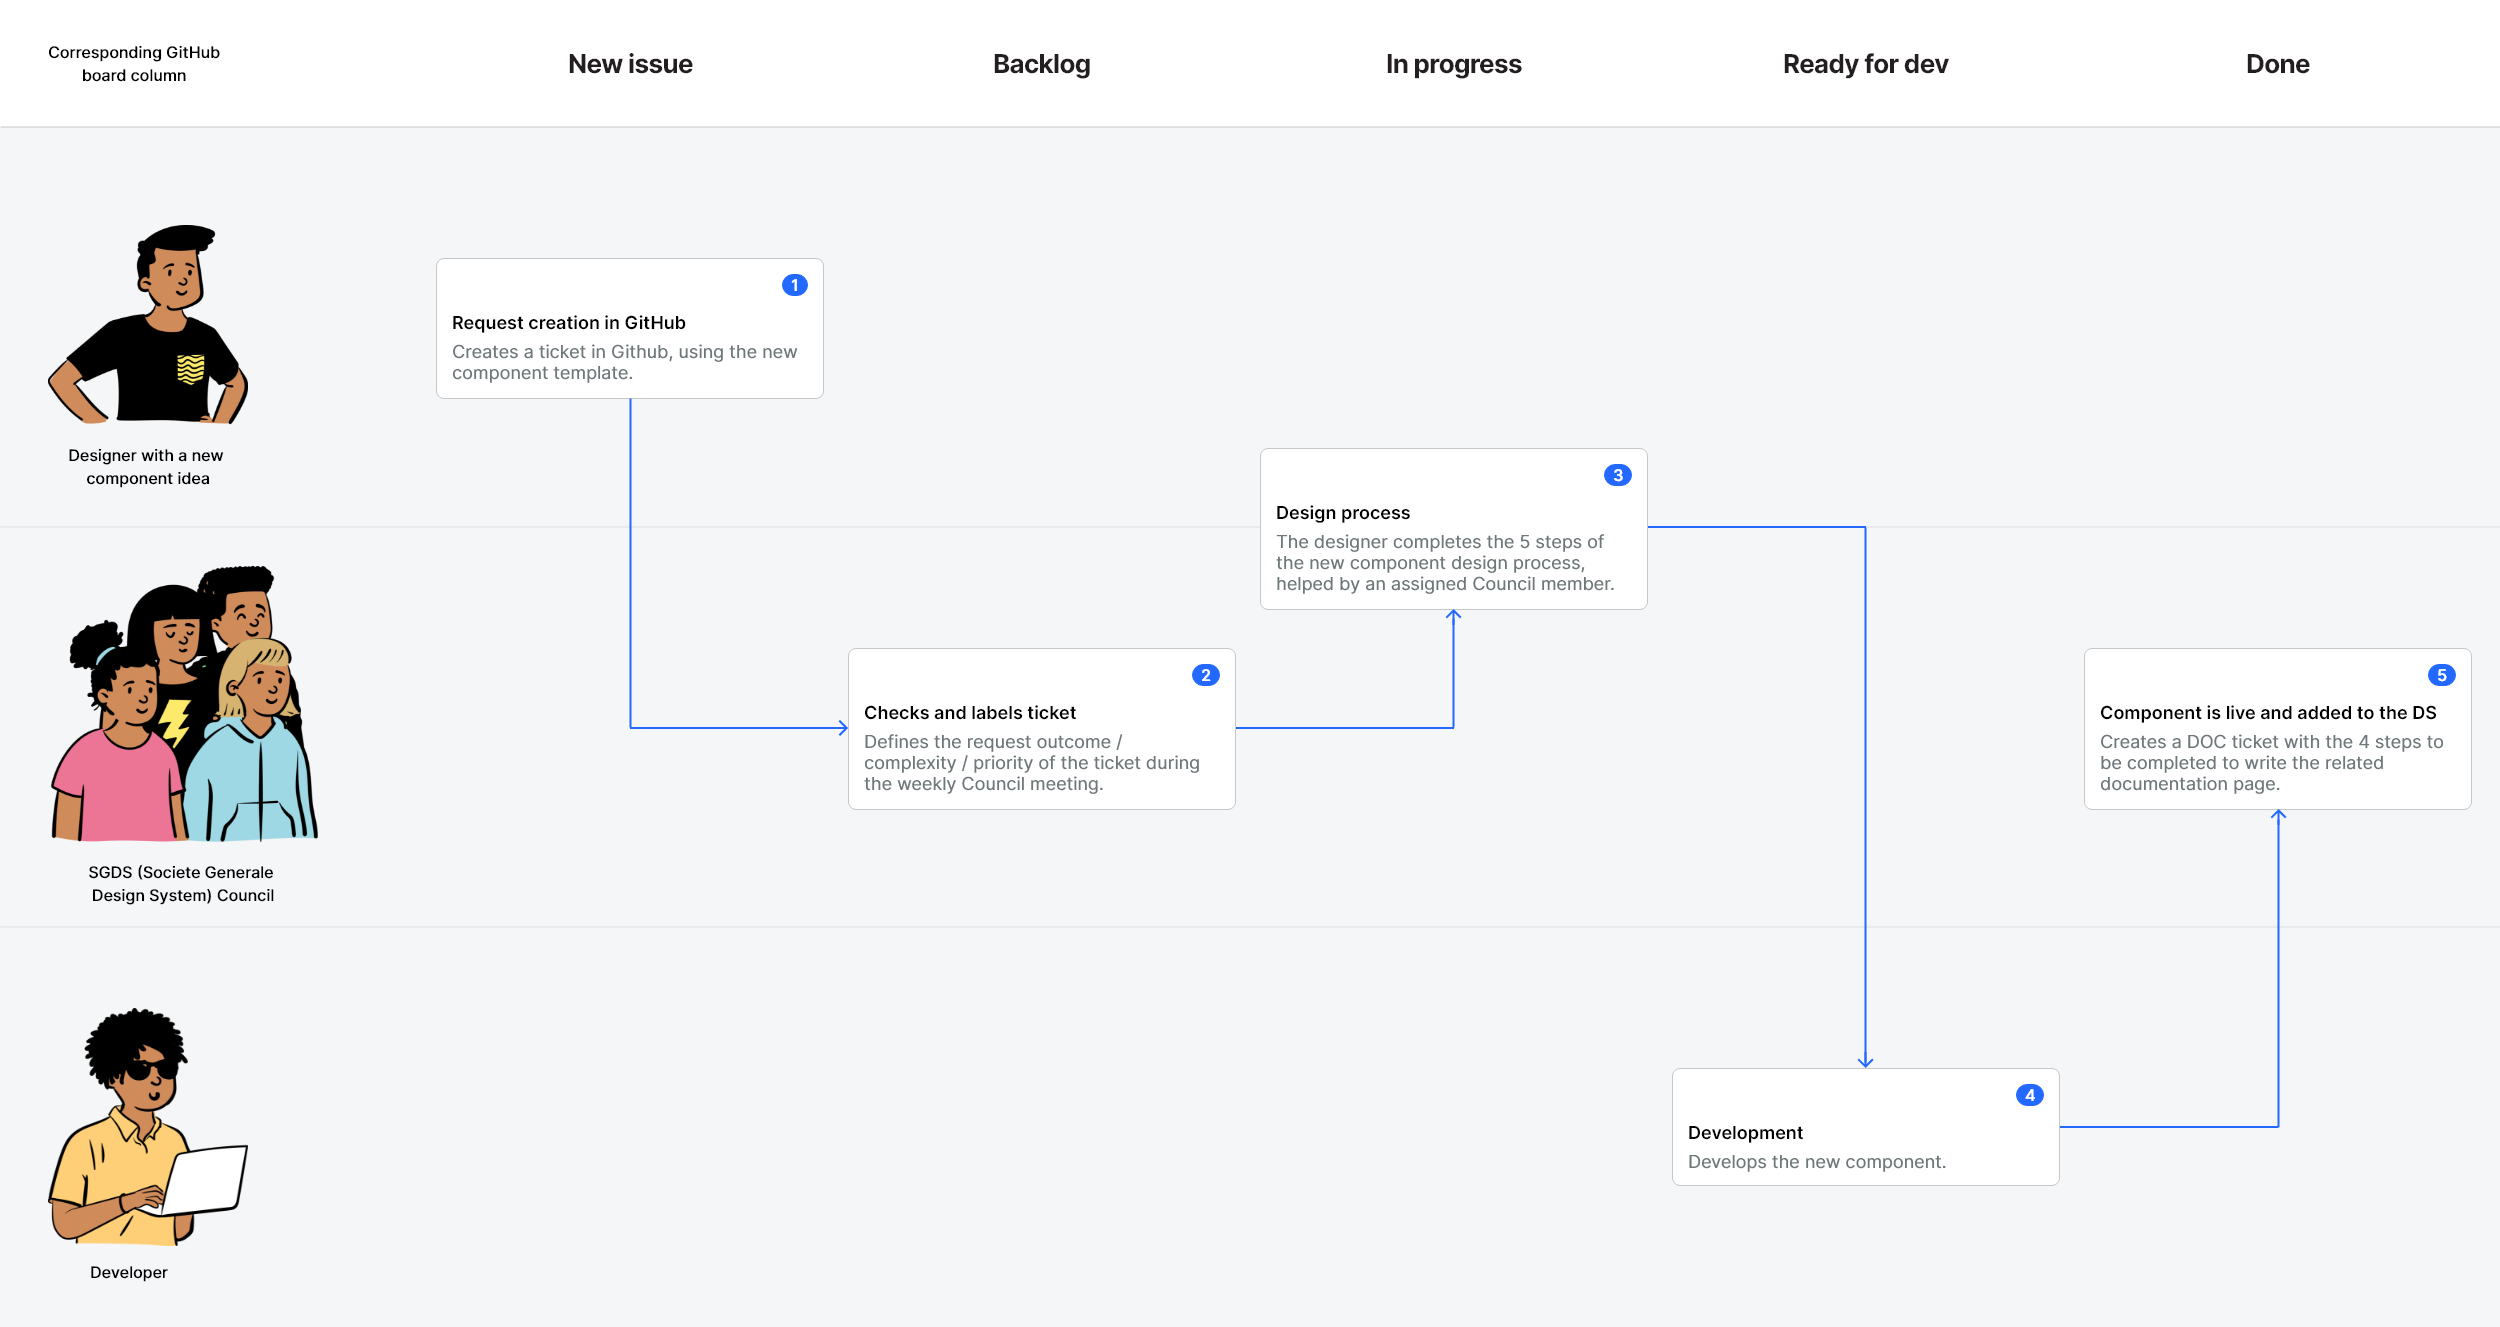 The process of the component request through all the stakeholders working on it (designer, Council and developer)